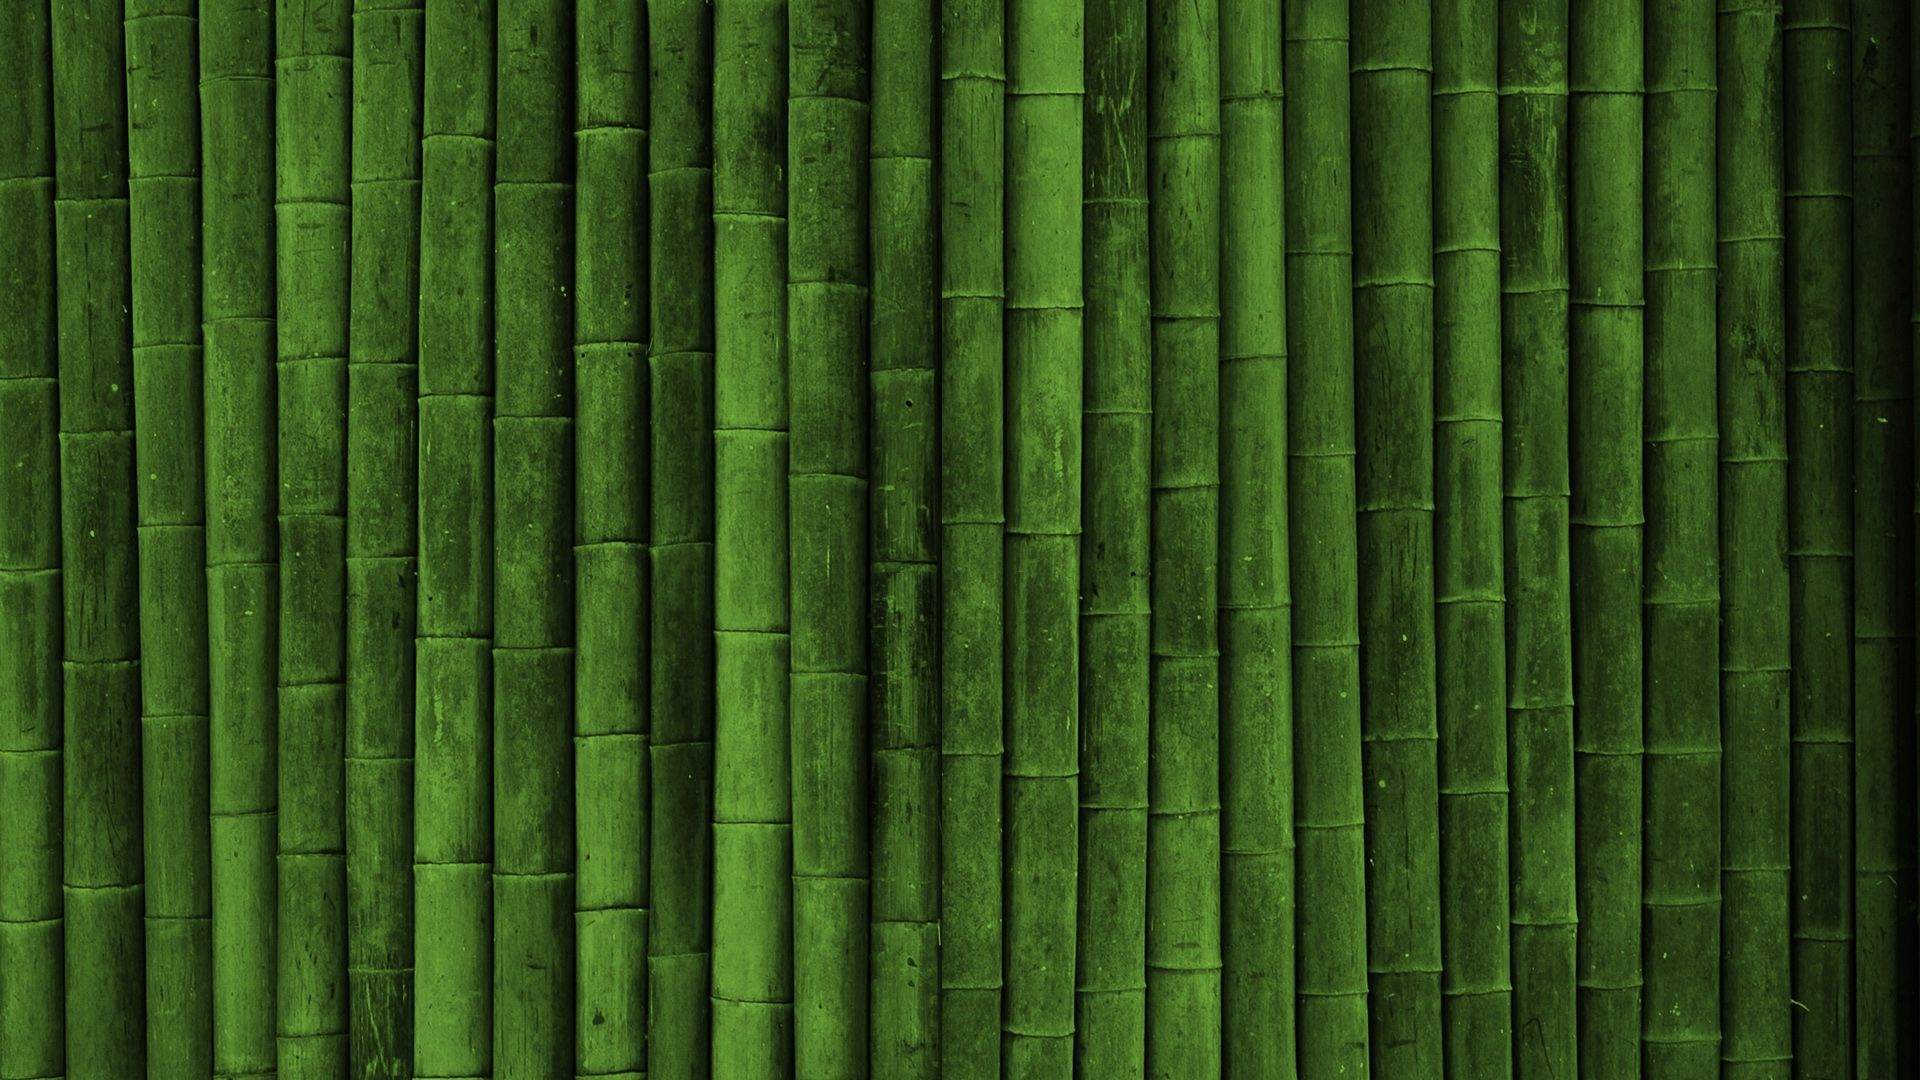 Hd Green Wallpaper 1920x1080